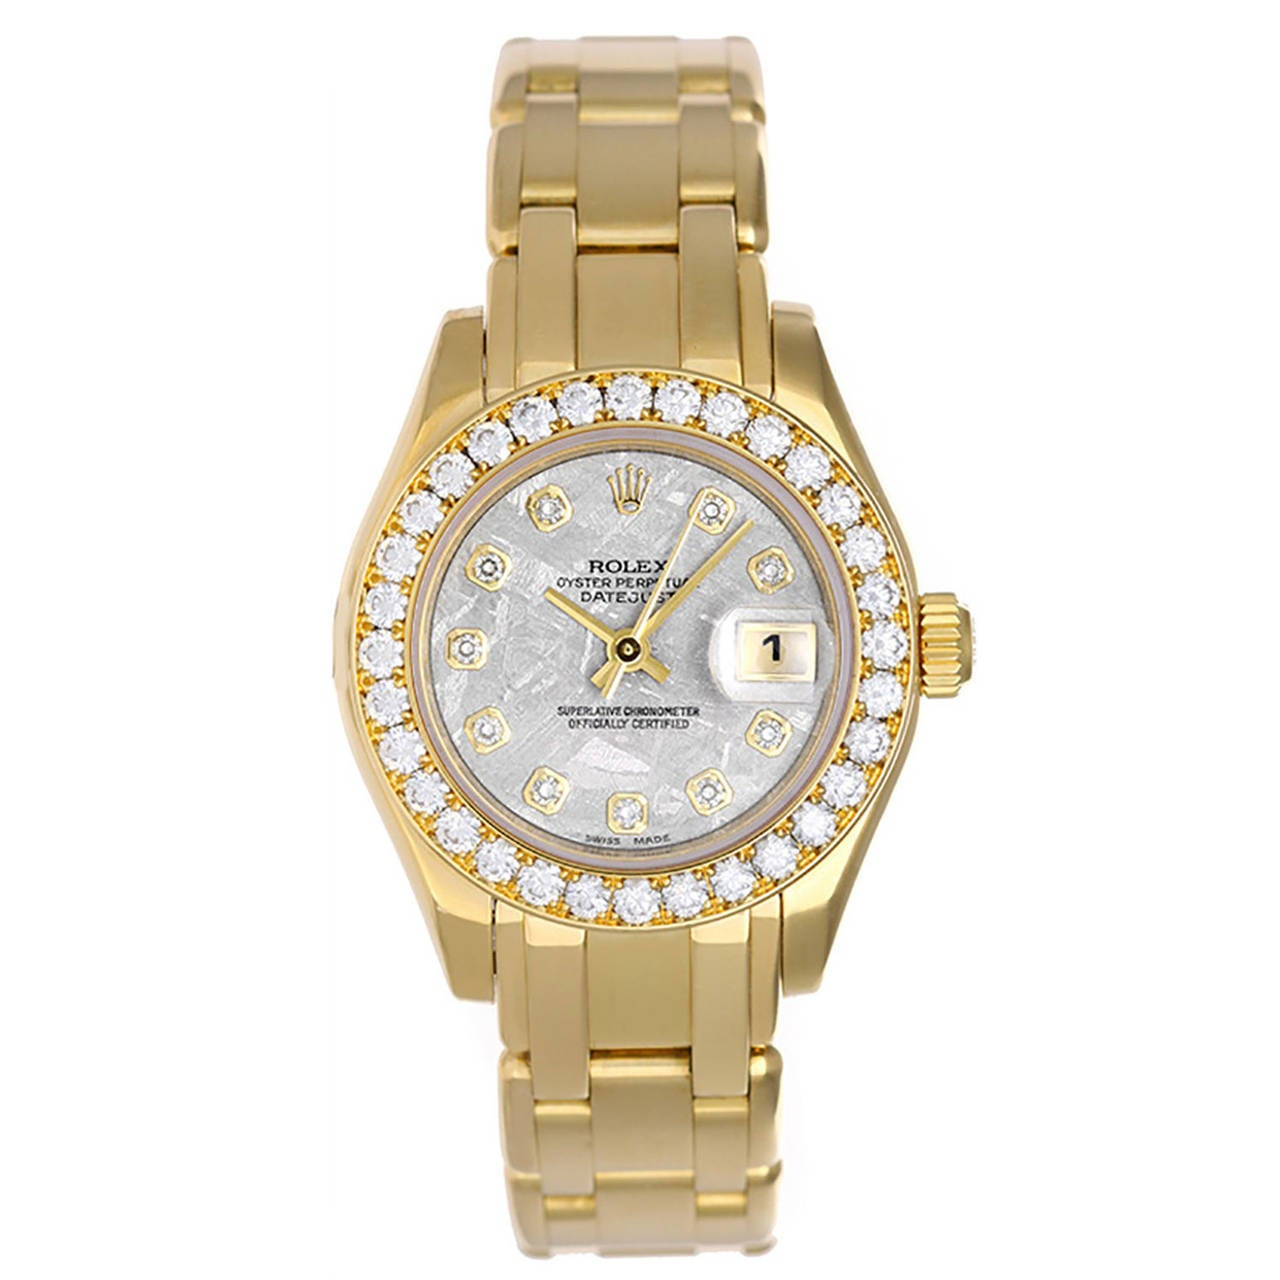 Rolex Lady's Yellow Gold Diamond Dial Automatic Wristwatch Ref 80298